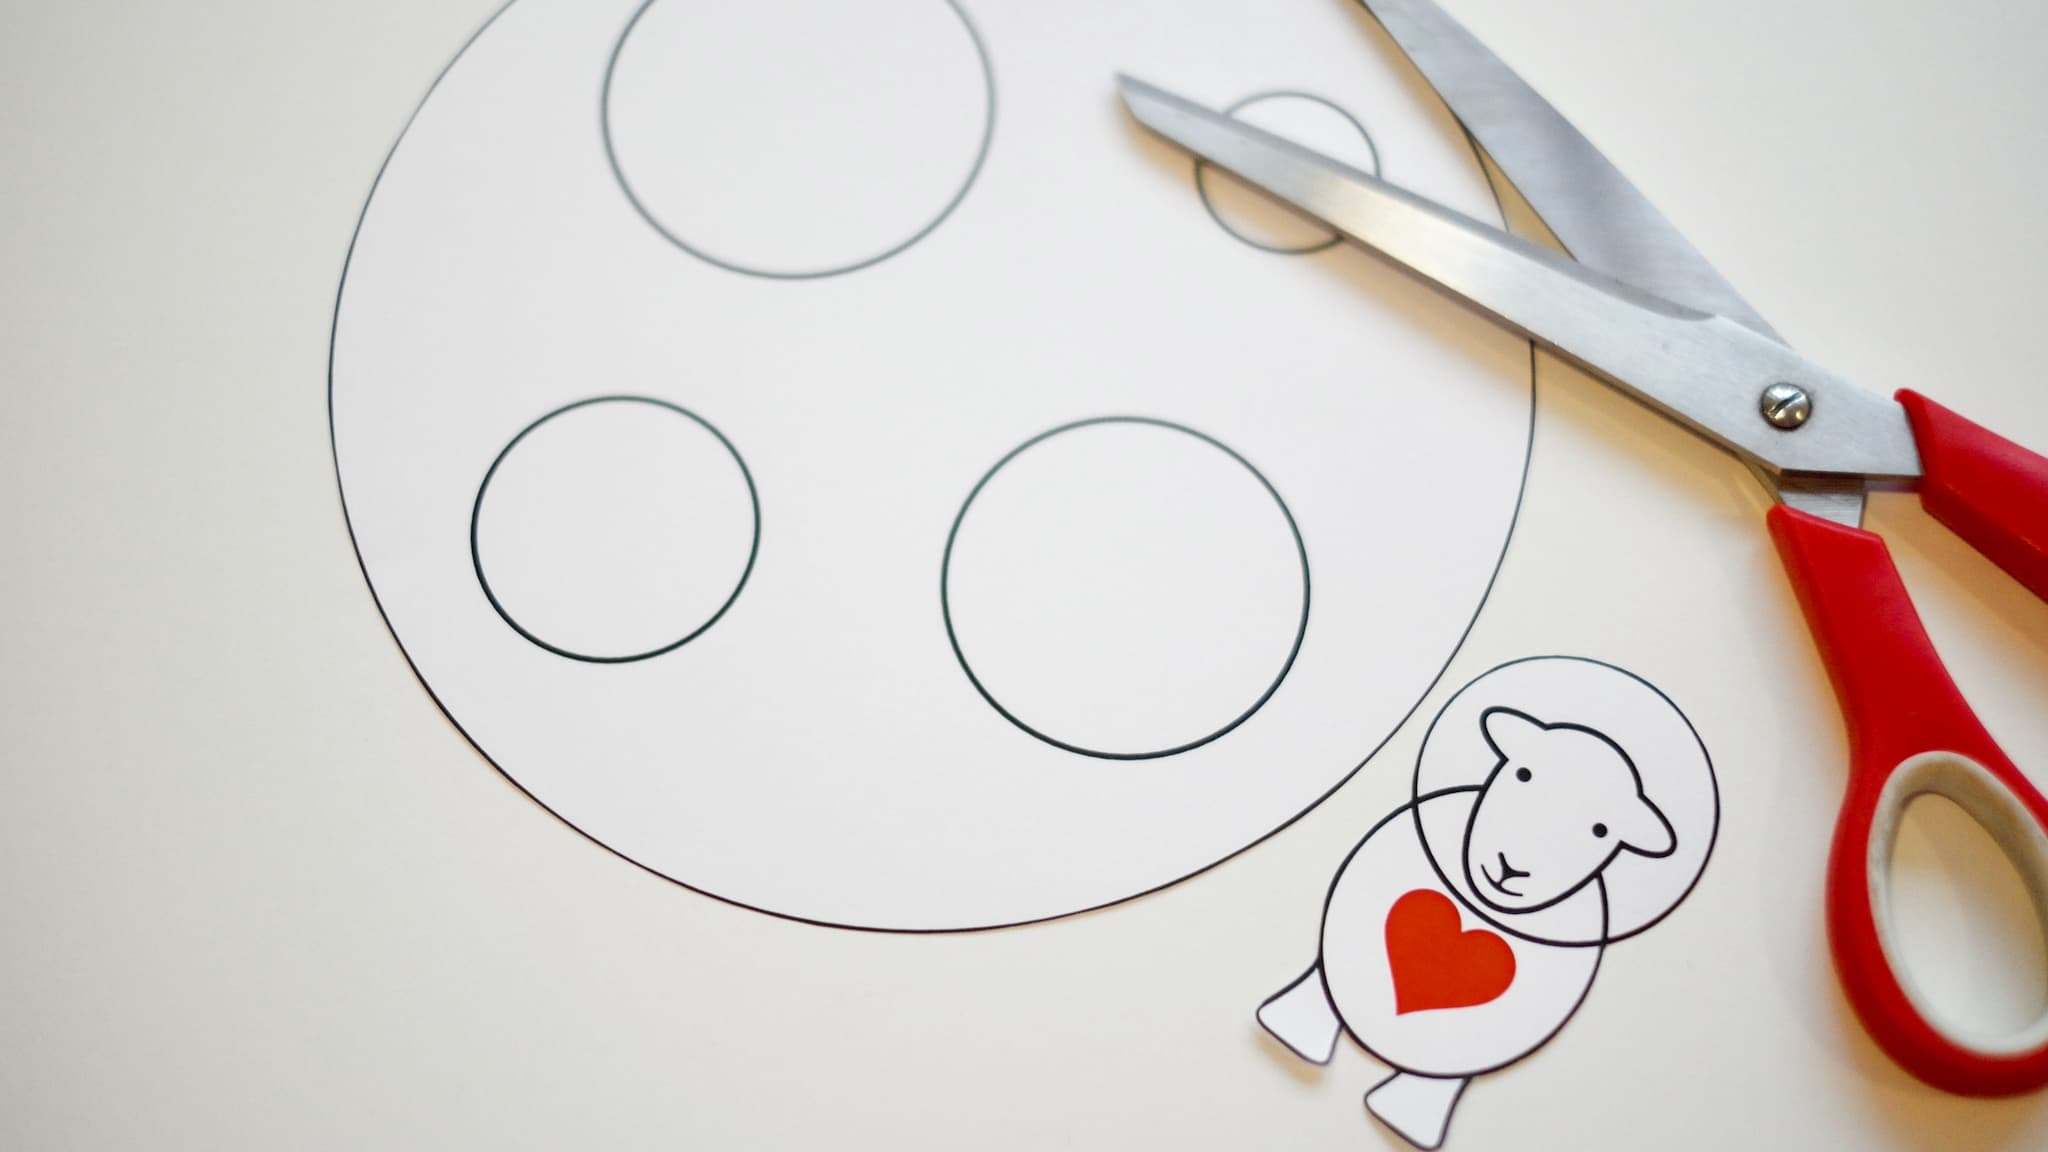 Download our free cutting template to make your own handmade Valentine's Day card